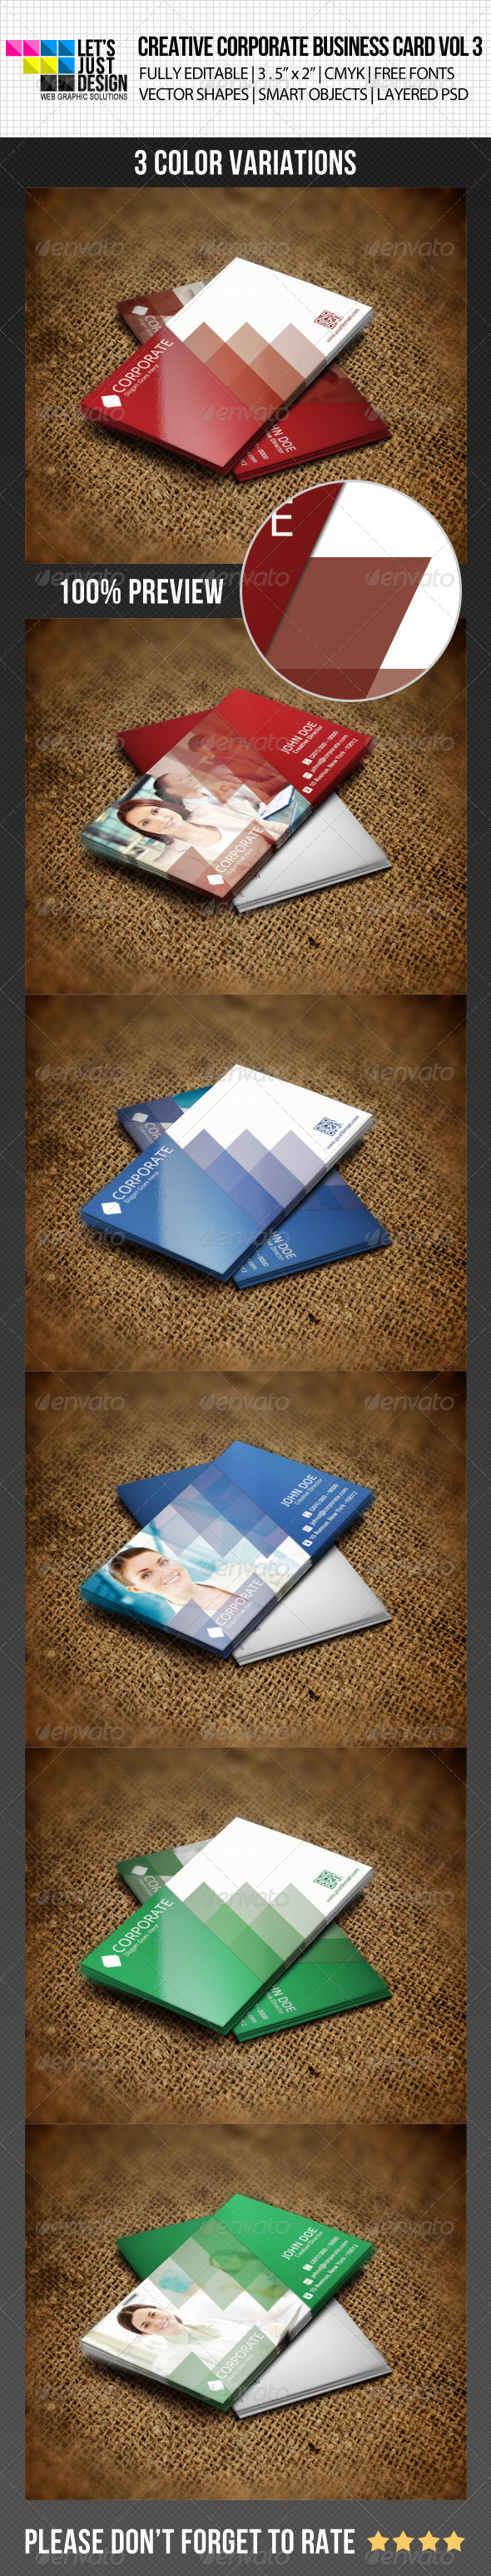 Creative Corporate Business Card Vol 3 - Corporate Business Cards